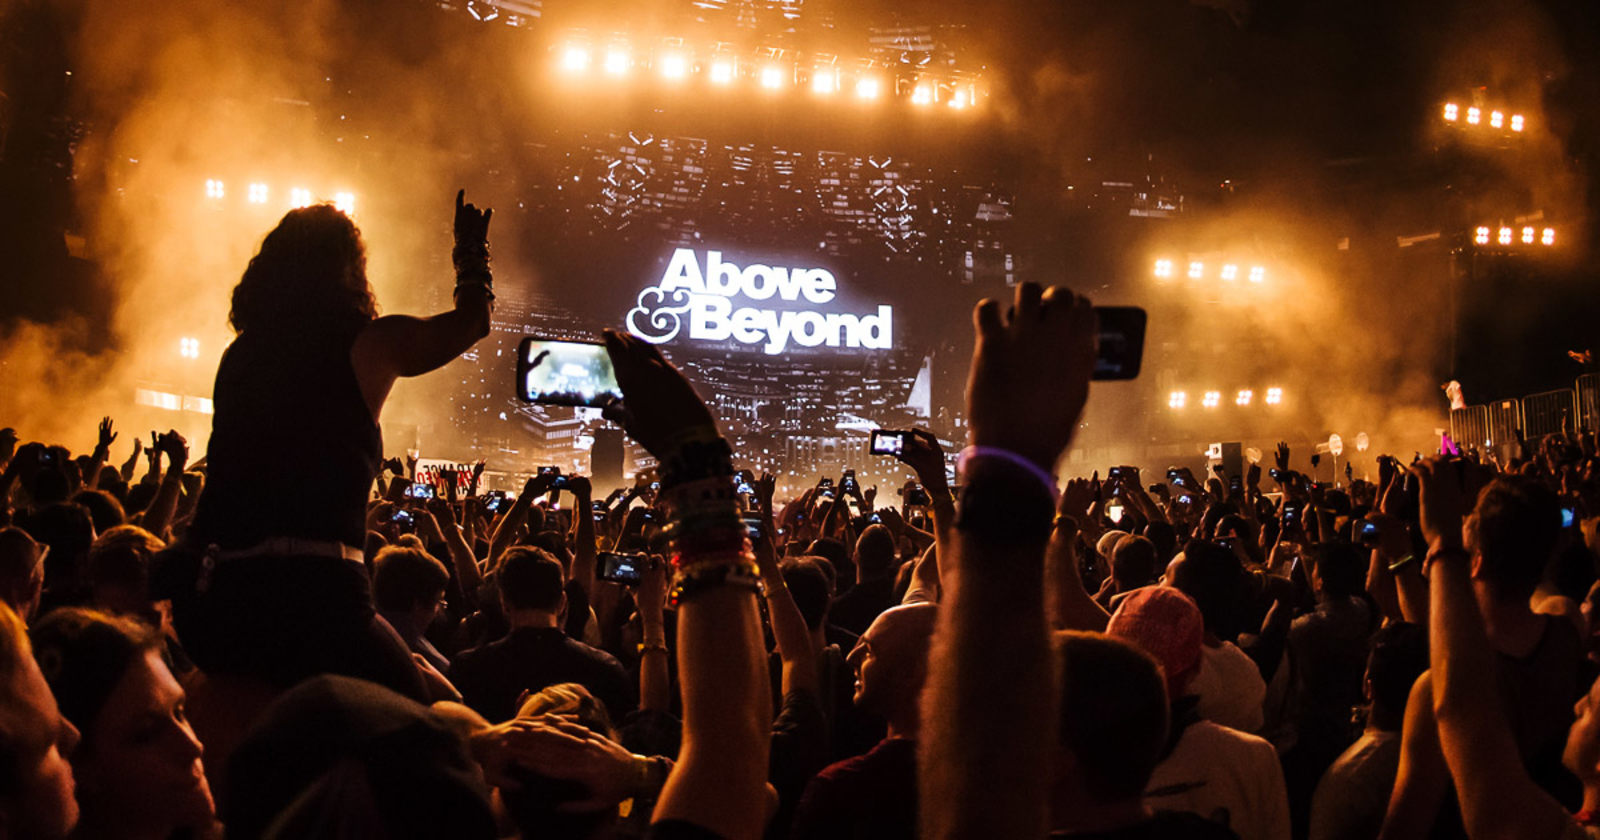 Above & Beyond Heading Image